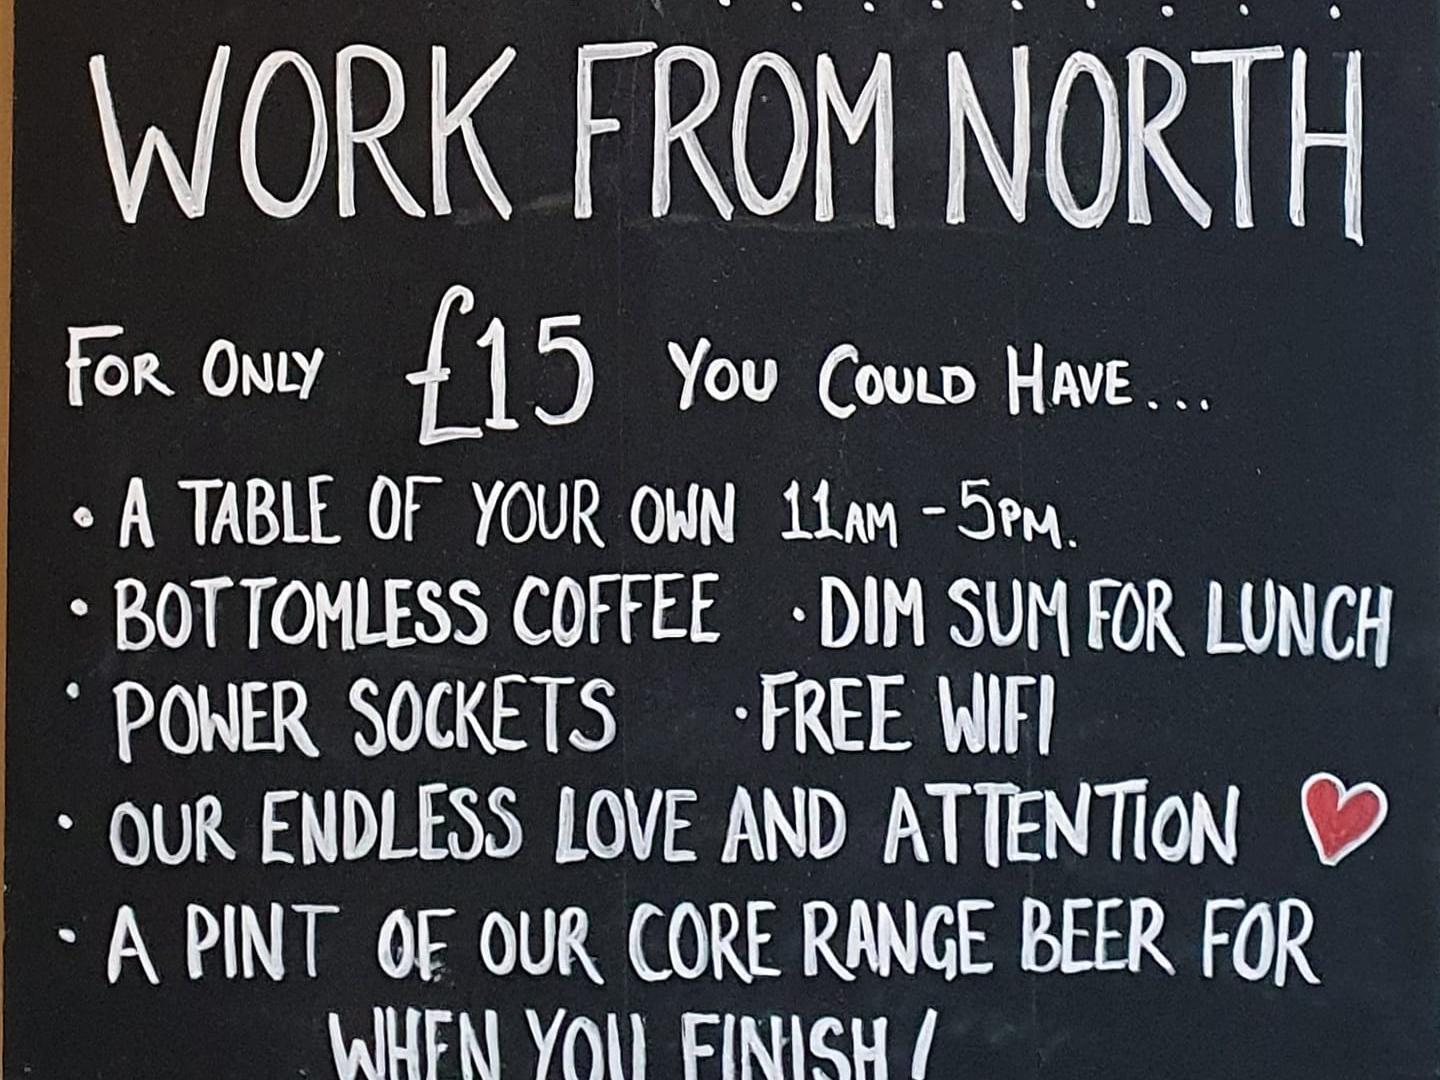 North Bar Launches Co-working Space With Bottomless Coffee And After Work Pint photo